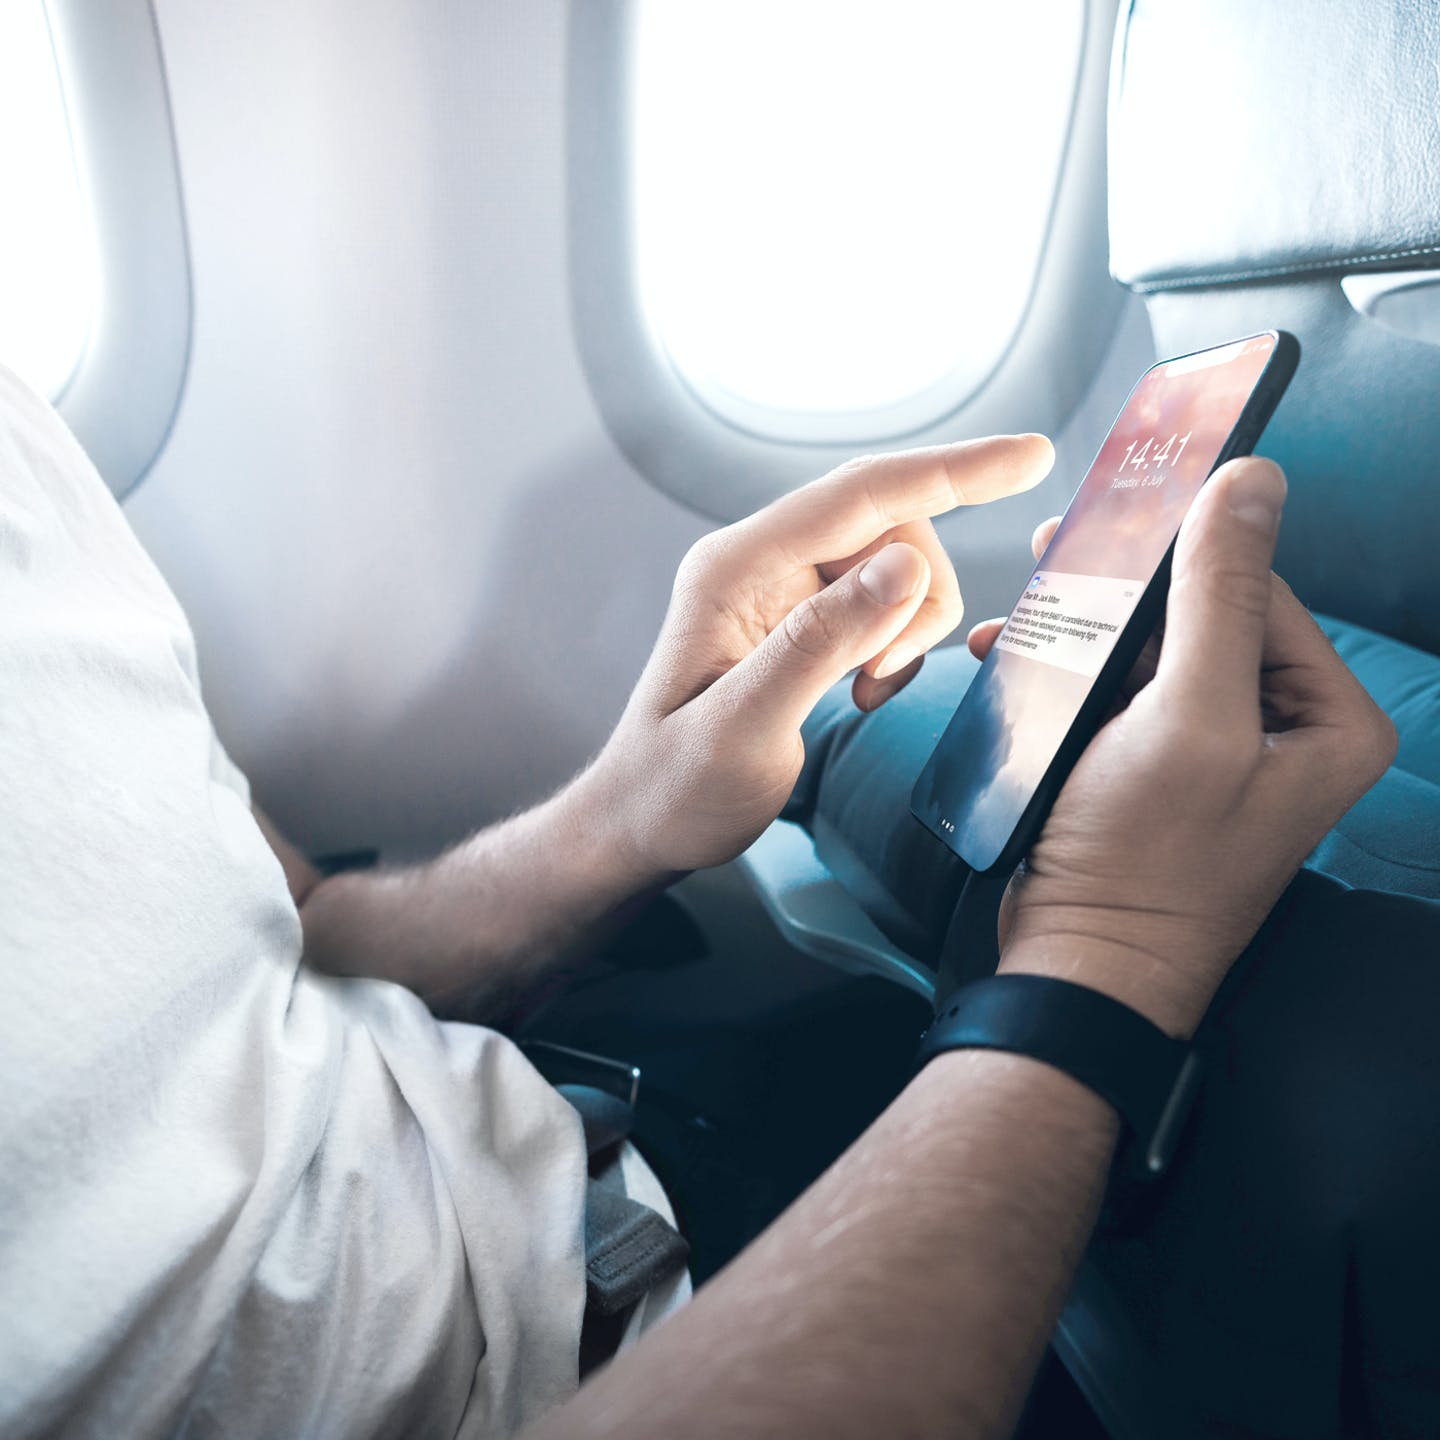 Man using a native mobile app during a flight powered by a full digital platform